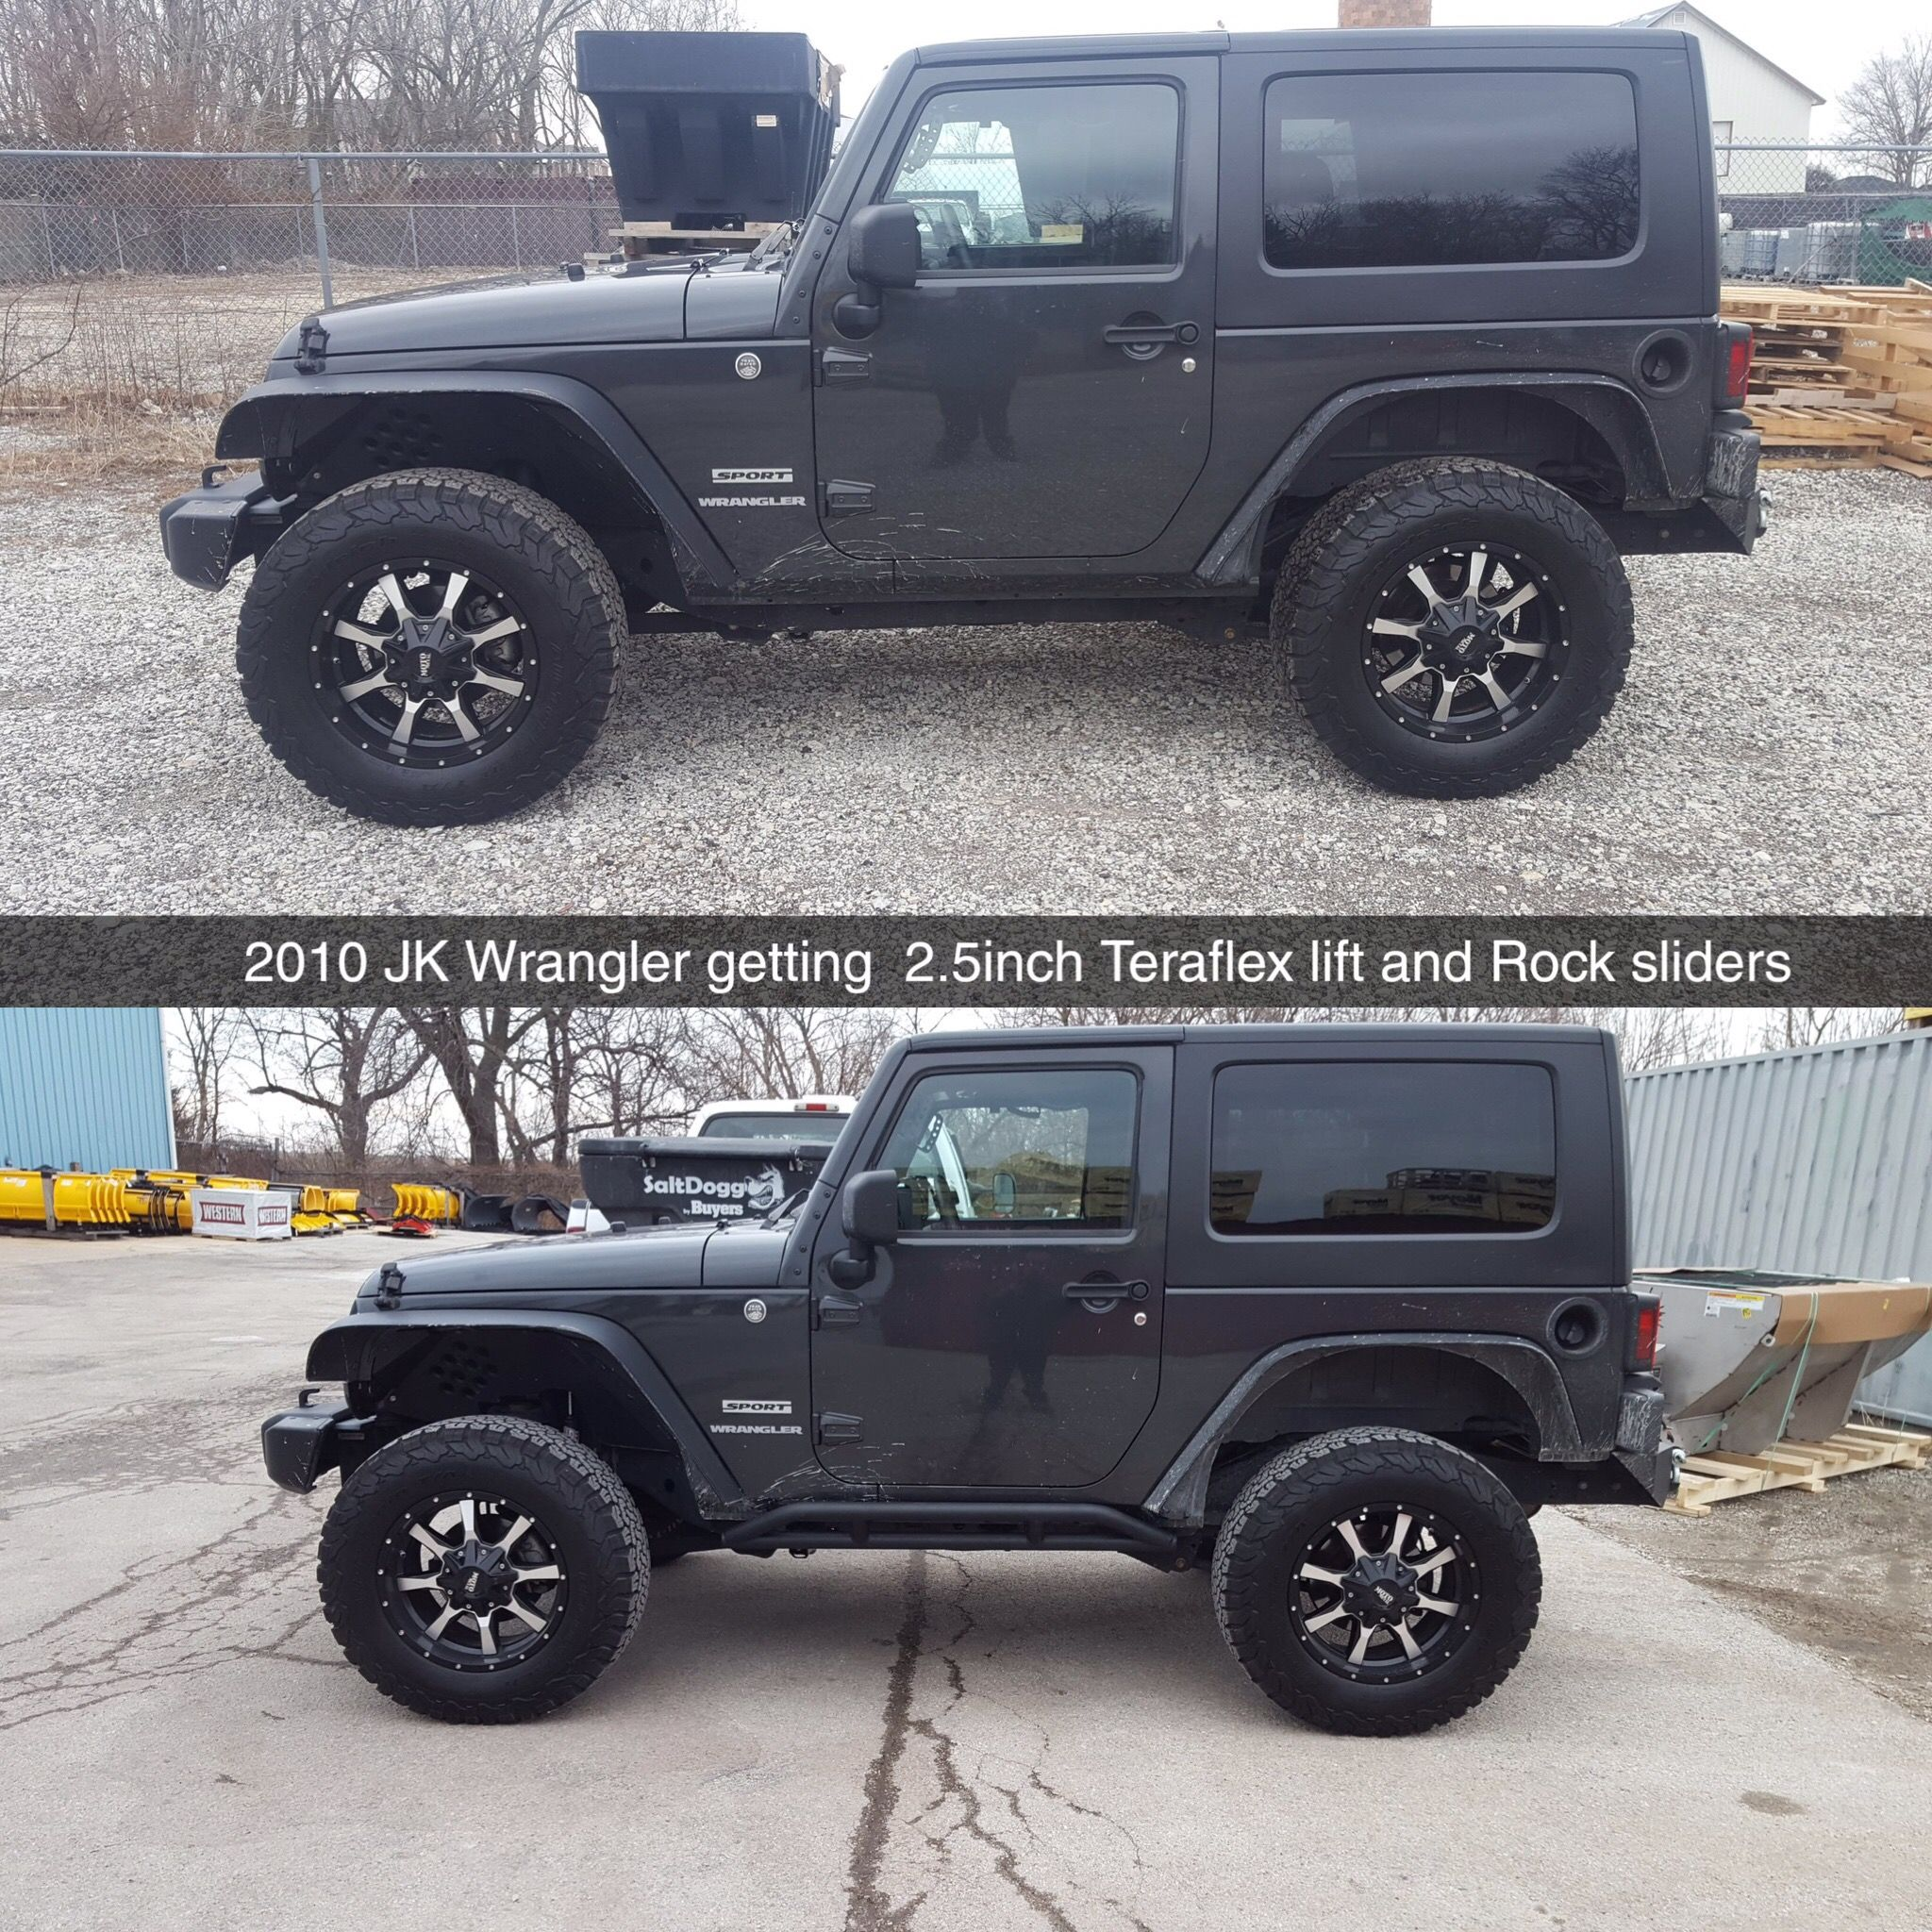 This 2010 Jeep Wrangler Jk Got A 2 5 Inch Lift Kit And Some Rock